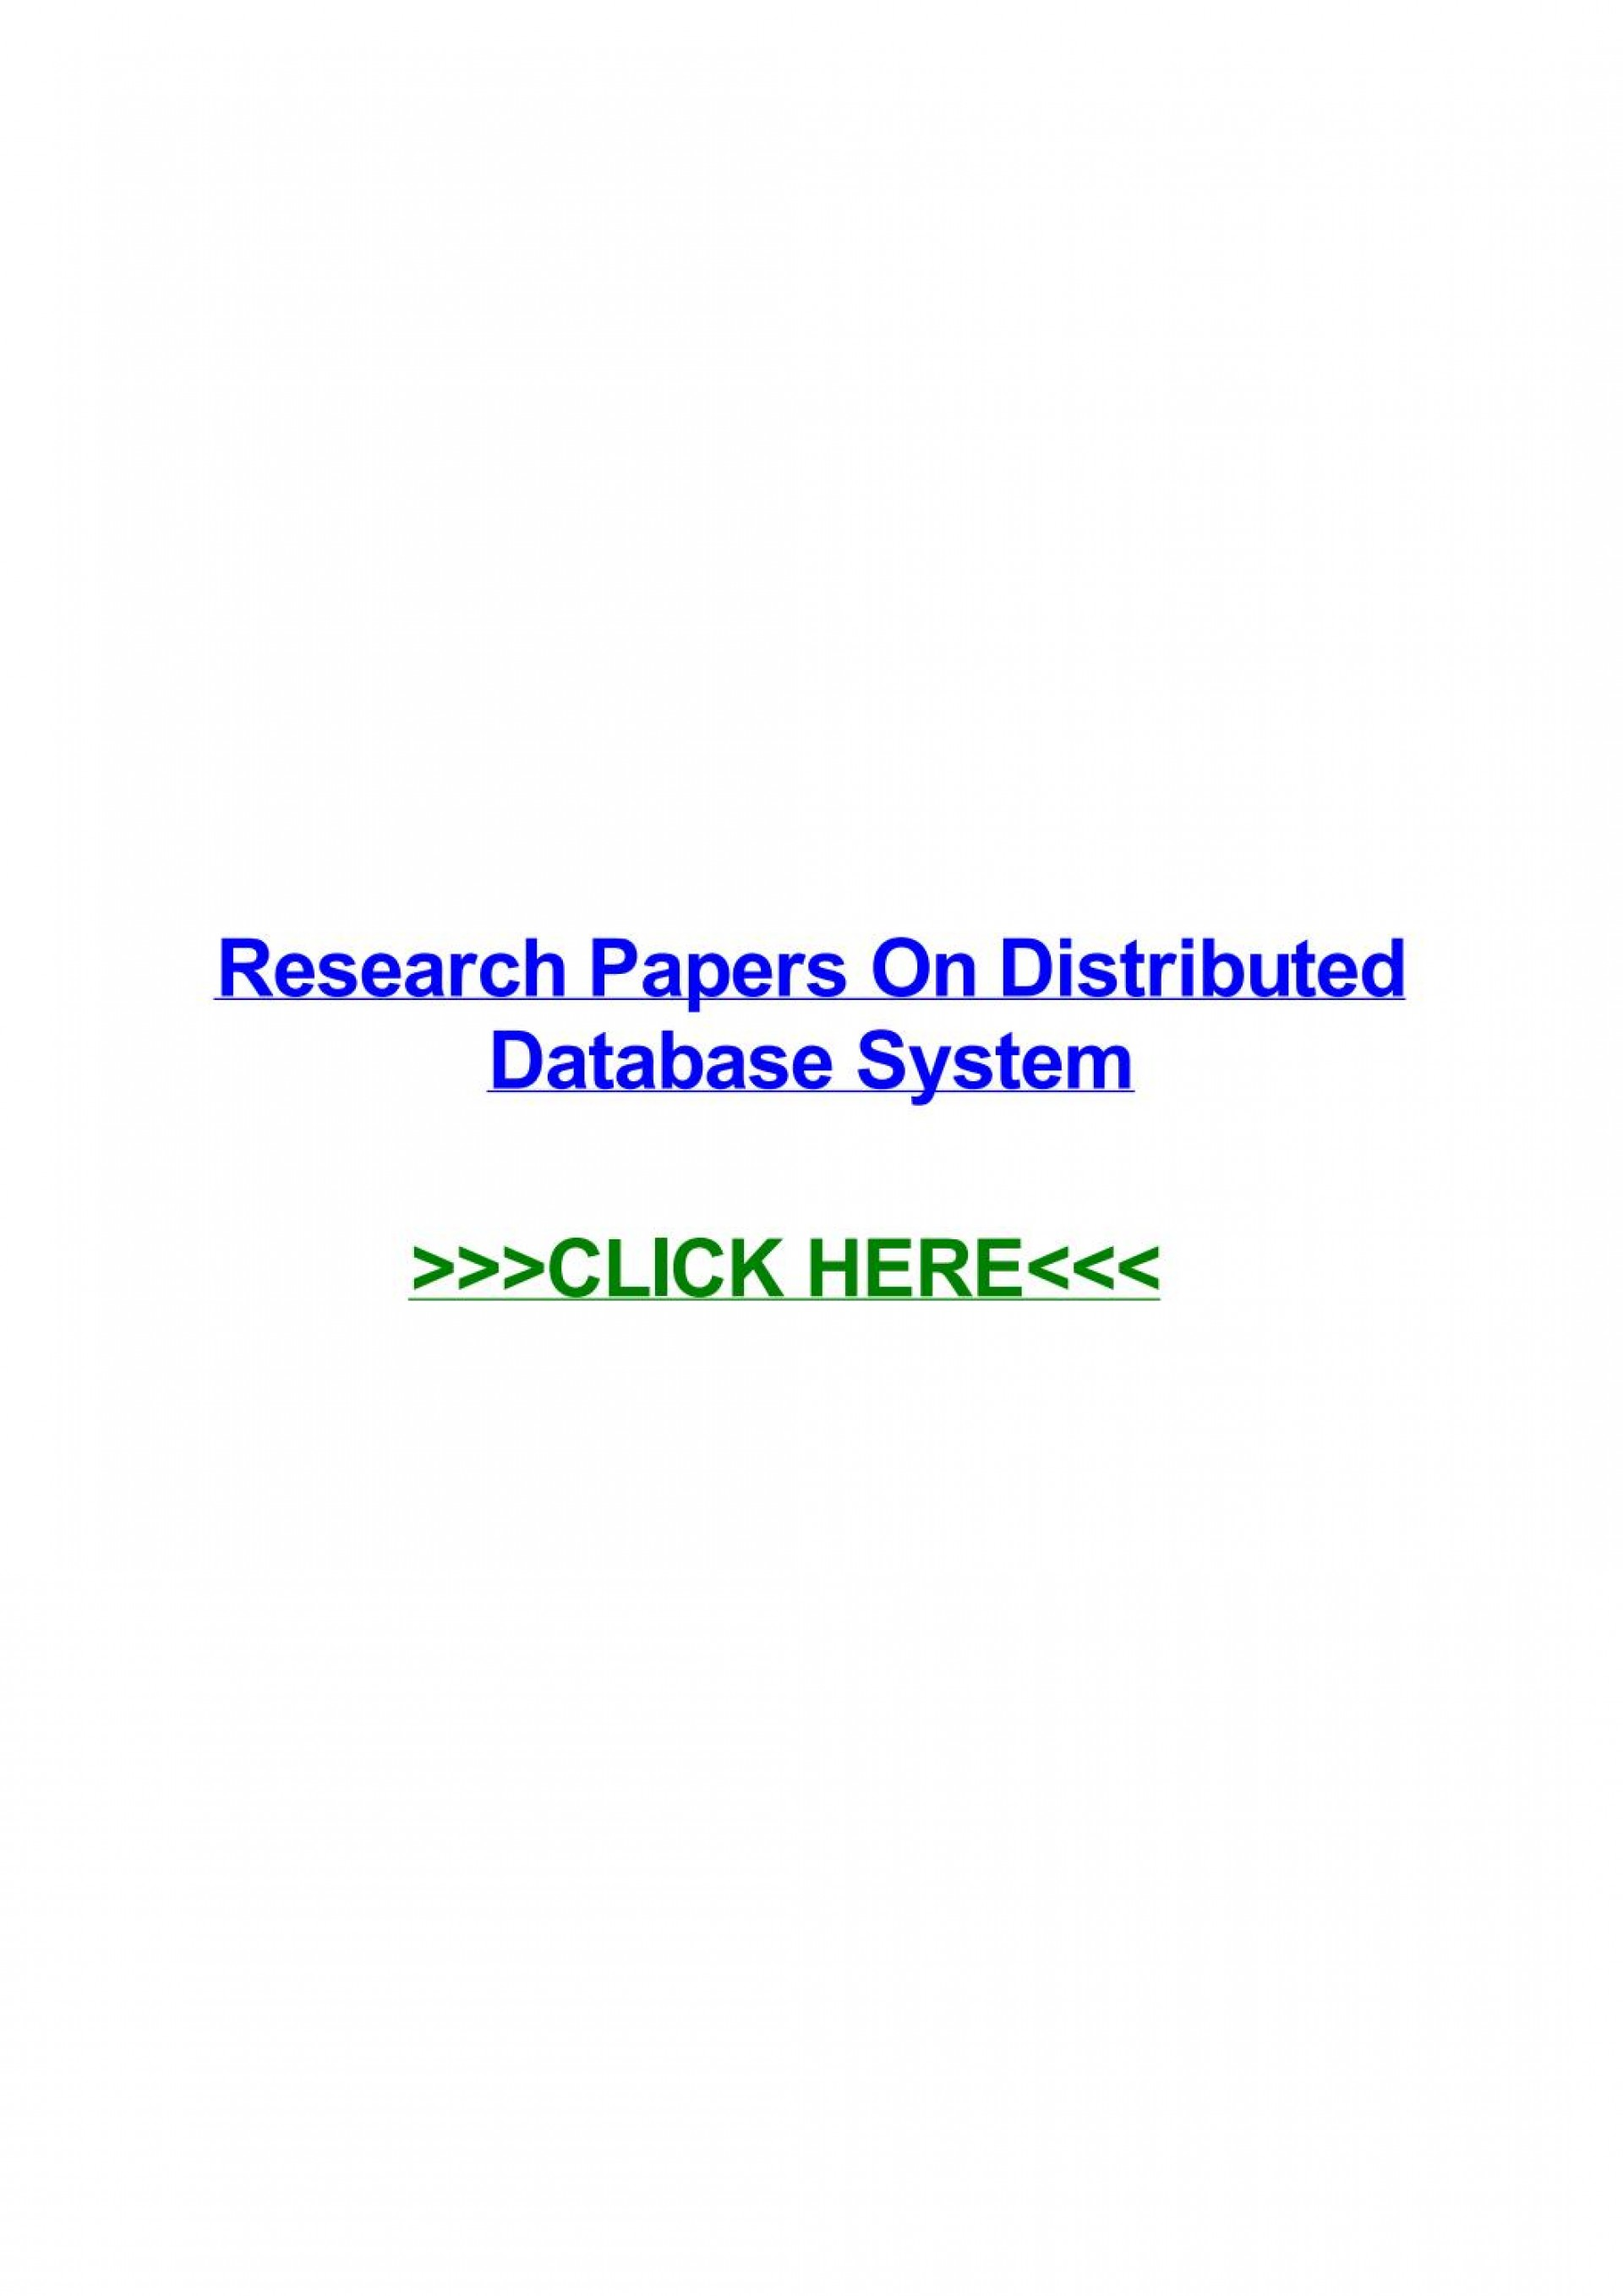 002 Distributed Database Researchs Page 1 Unusual Research Papers Pdf 1920